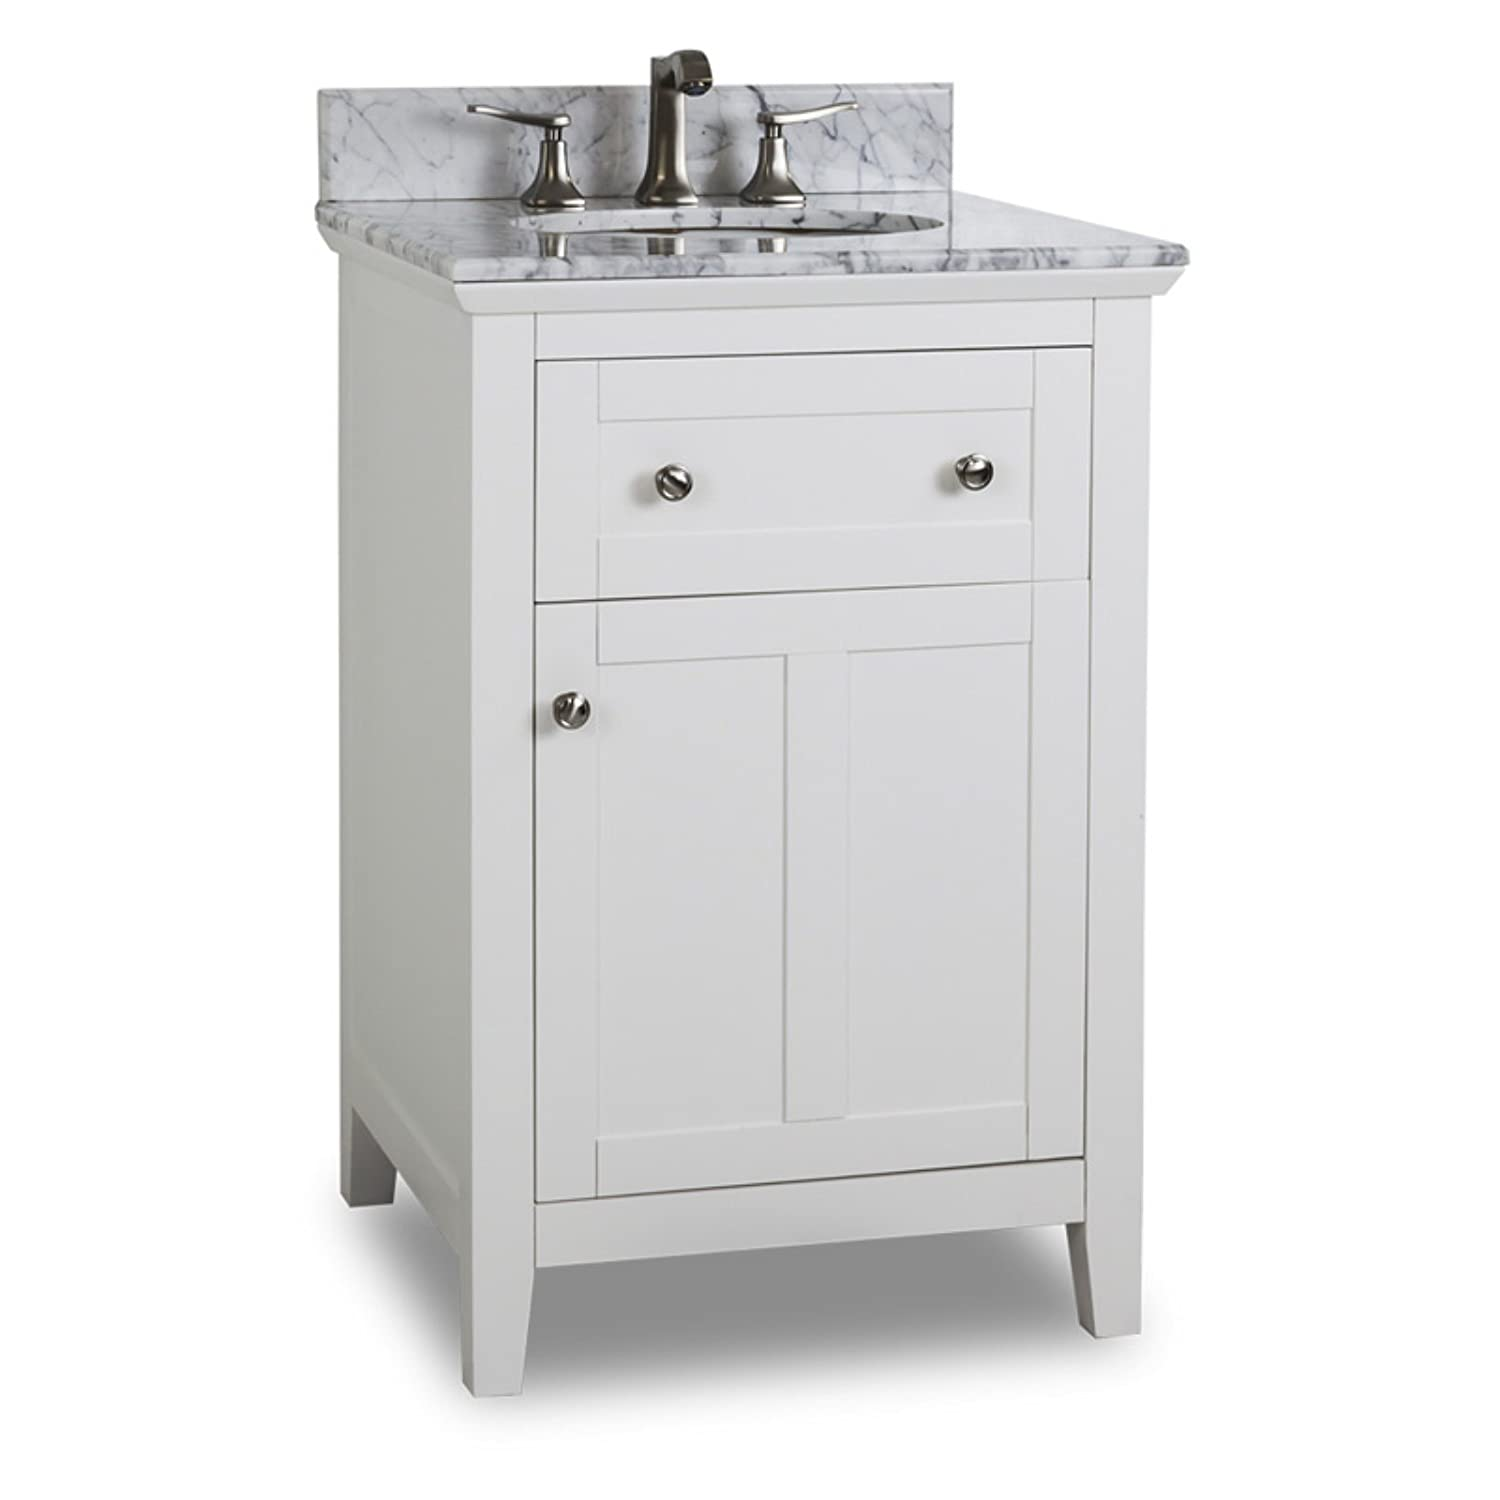 Amazon: Jeffrey Alexander Van10524t Chatham Shaker Vanity, White:  Home & Kitchen